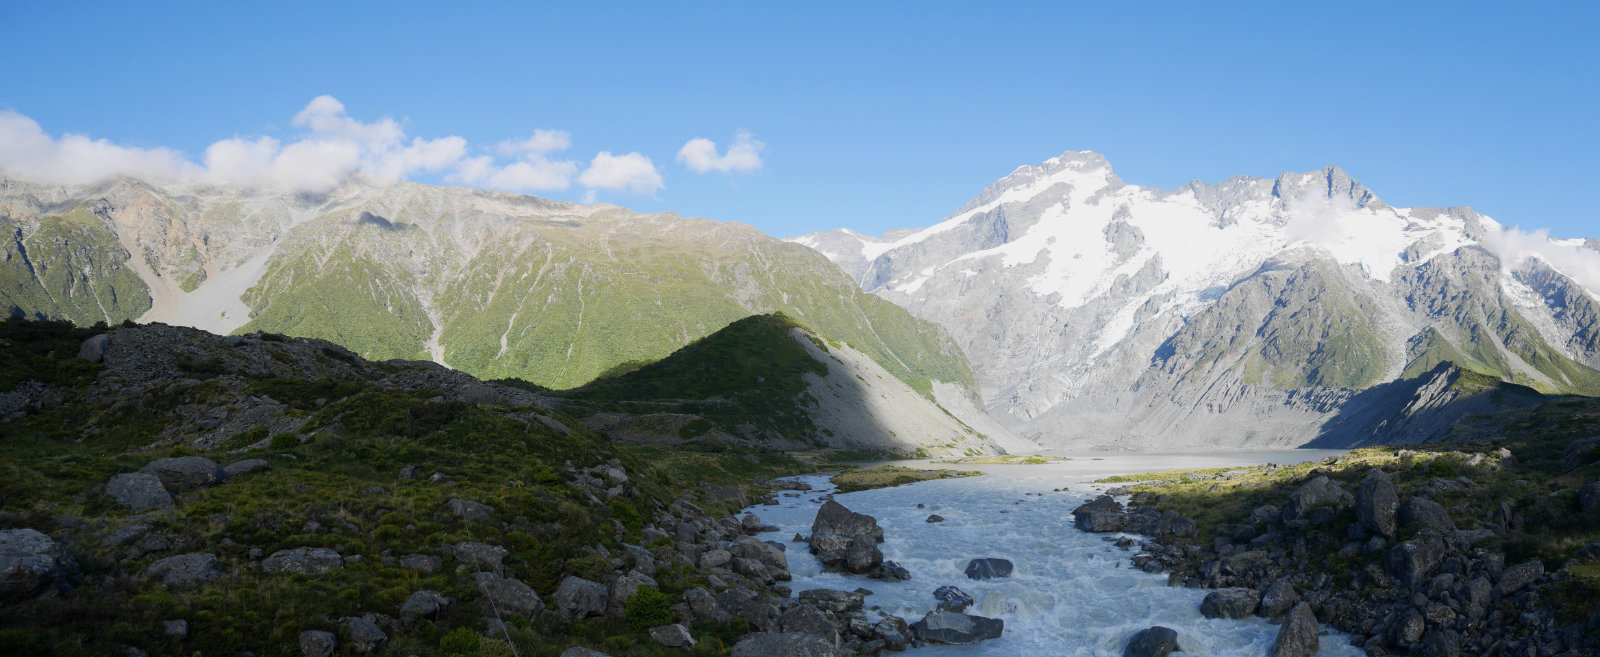 The Hooker Valley Track early in the morning